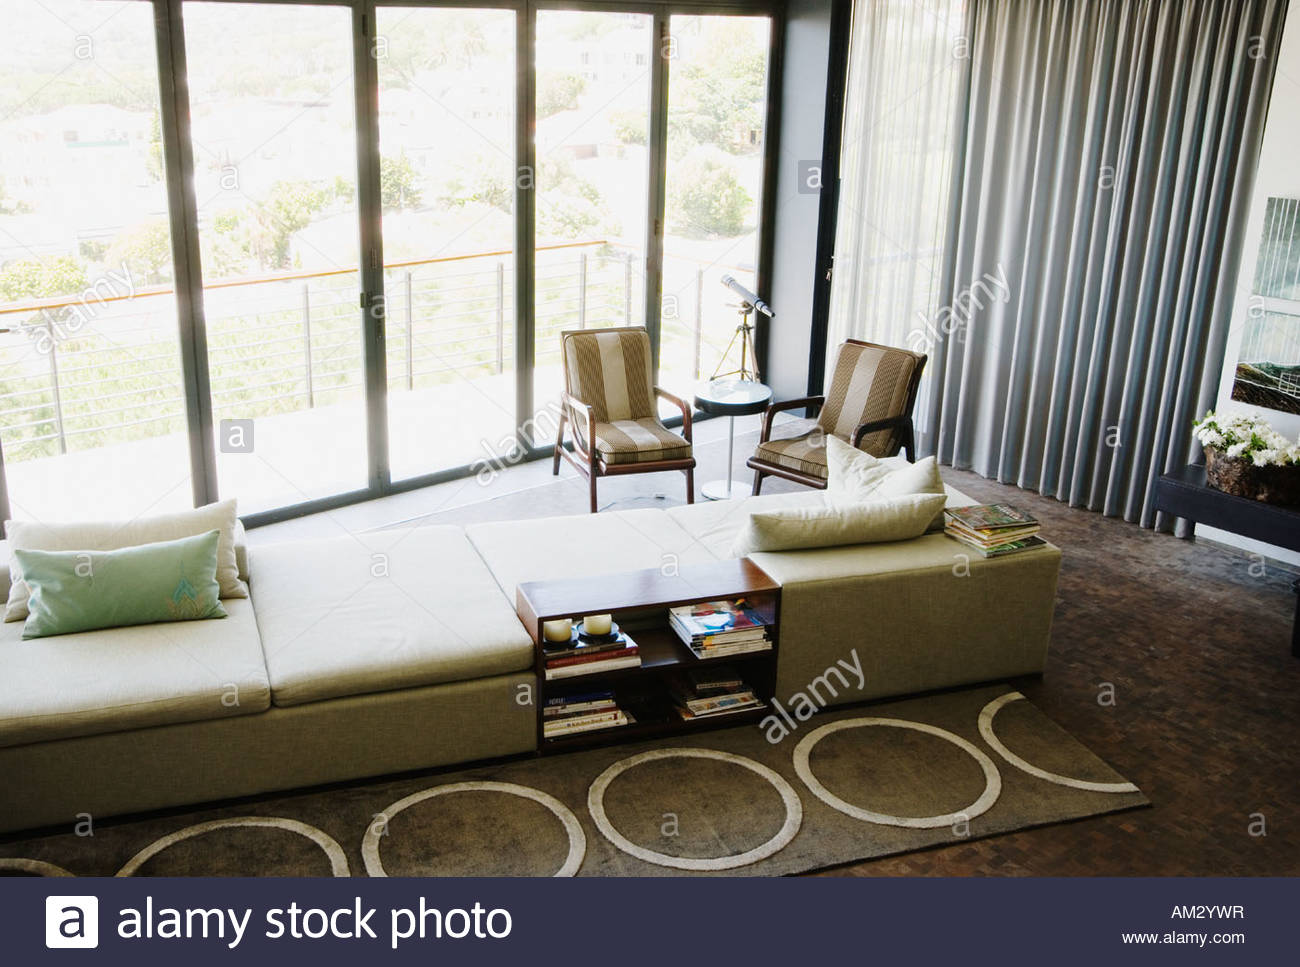 Bookshelf Books Living Room Stock Photos & Bookshelf Books Living ...